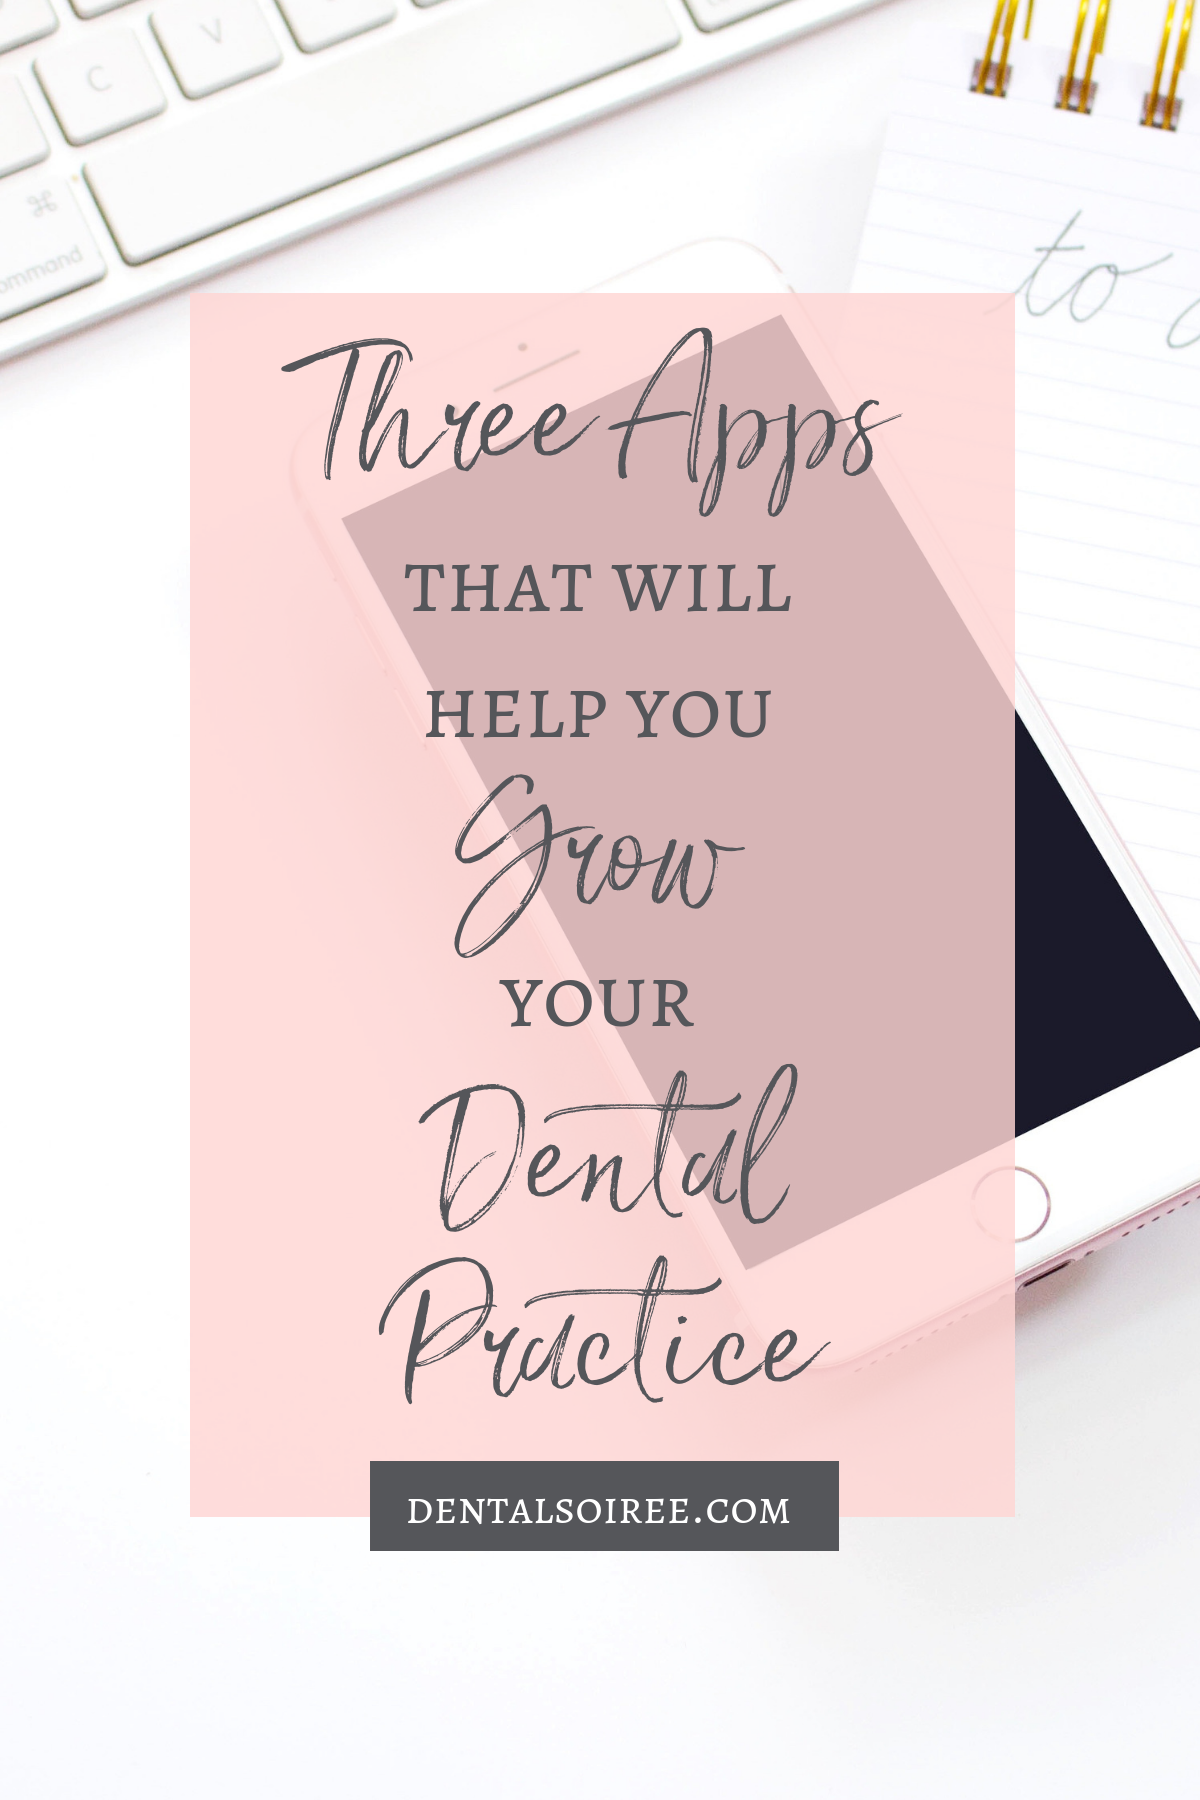 Three Apps That Will Help You Grow Your Dental Practice